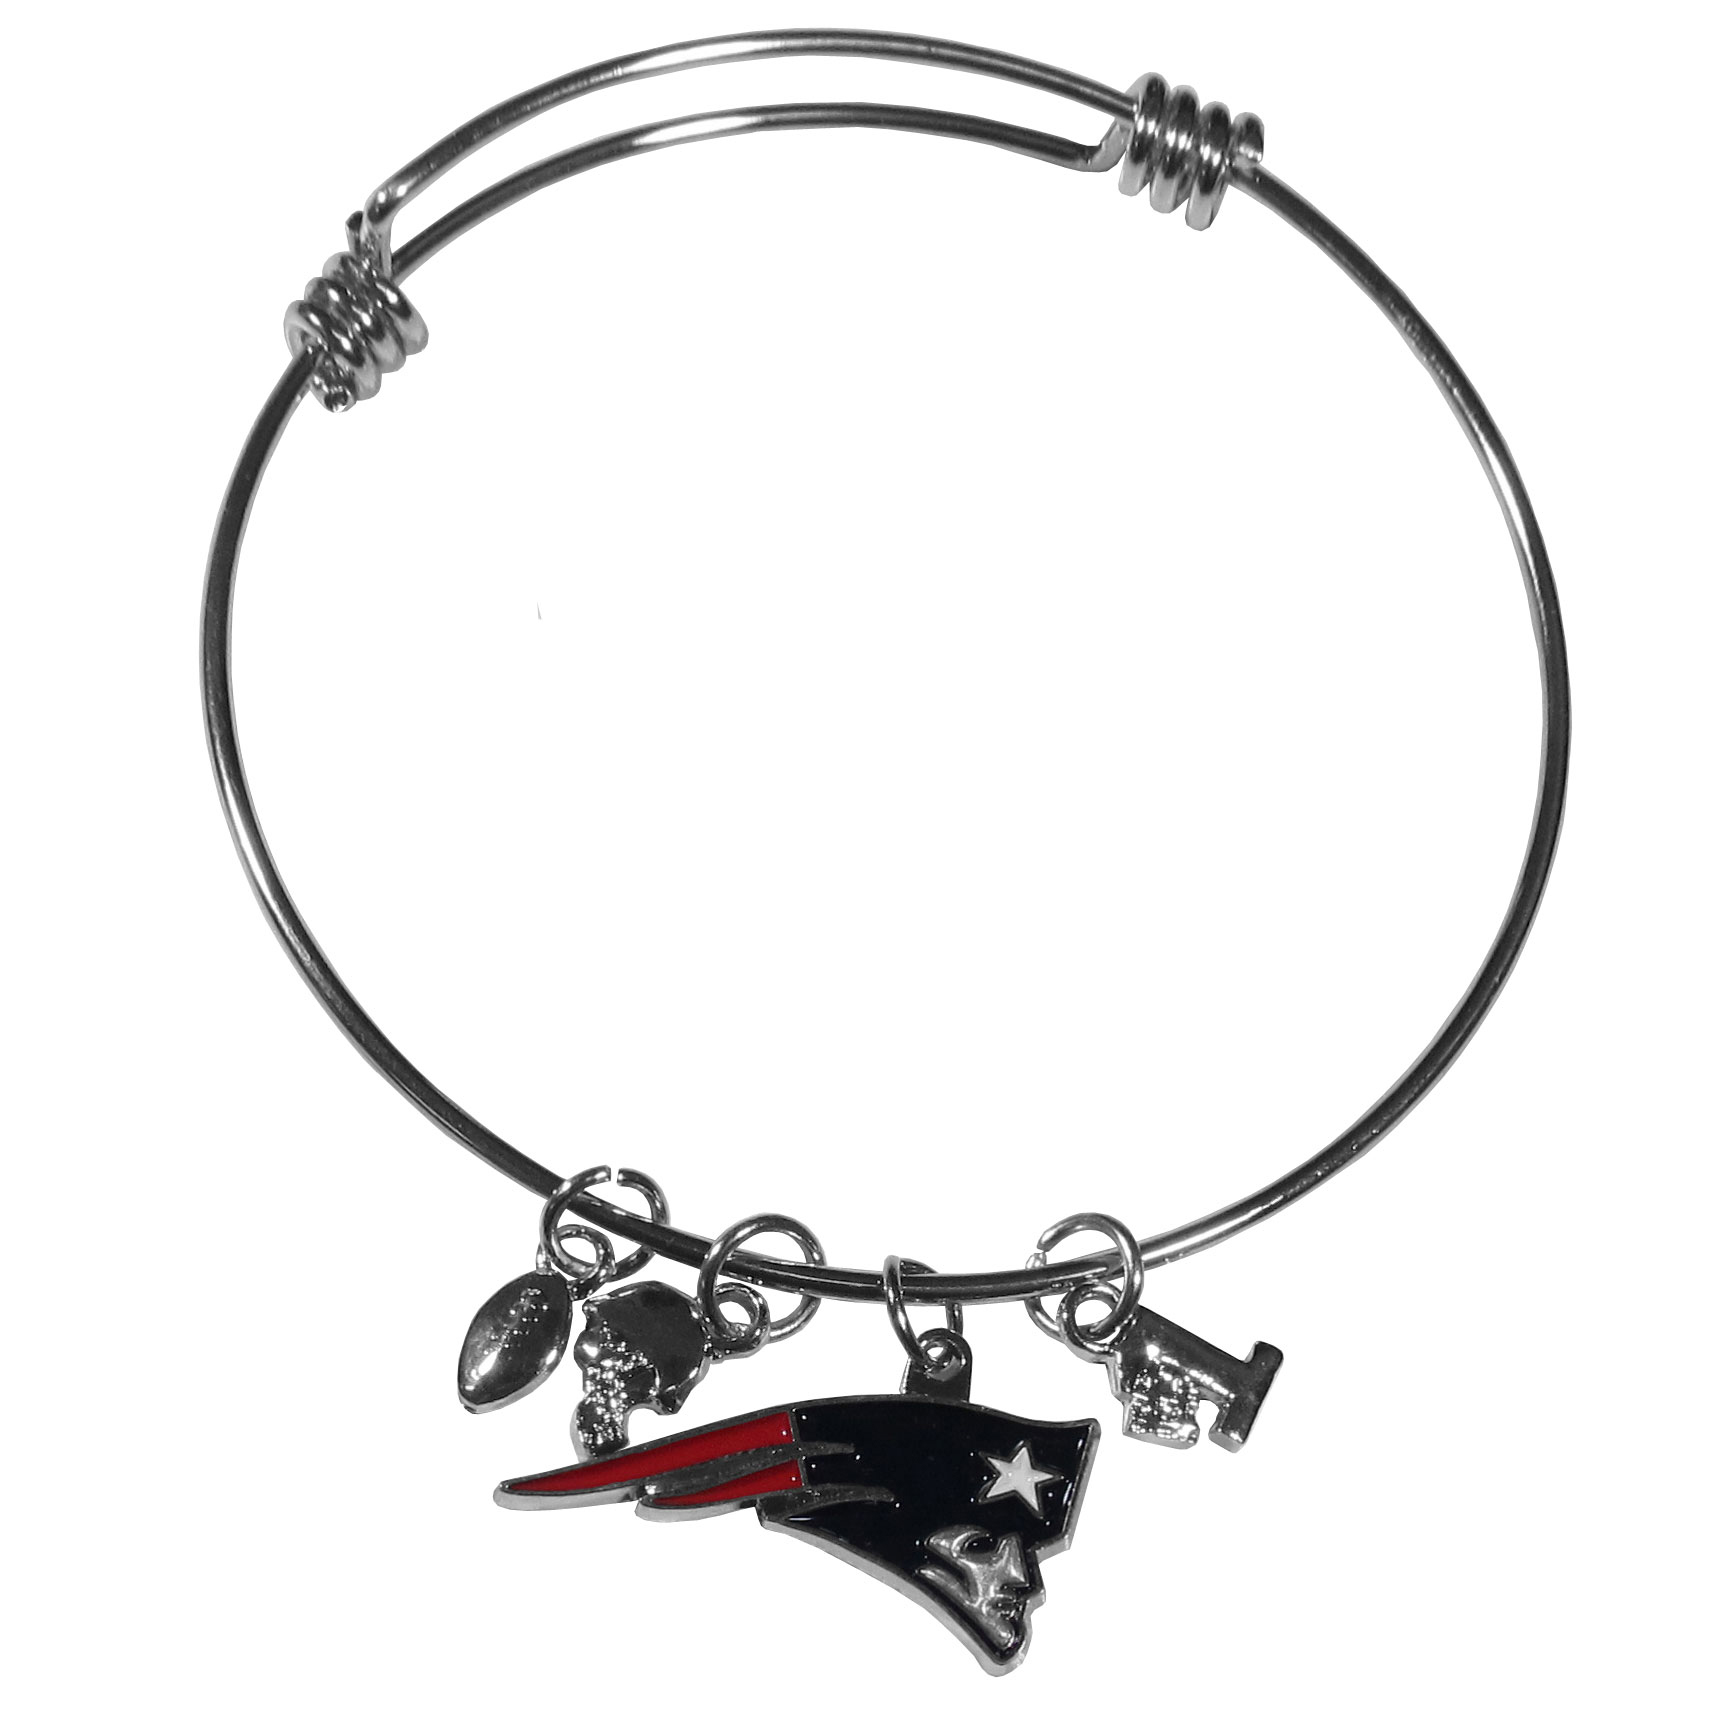 New England Patriots Charm Bangle Bracelet - Adjustable wire bracelets are all the rage and this New England Patriots bracelet matches the popular trend with your beloved team. The bracelet features 4 charms in total, each feature exceptional detail and the team charm has enameled team colors.